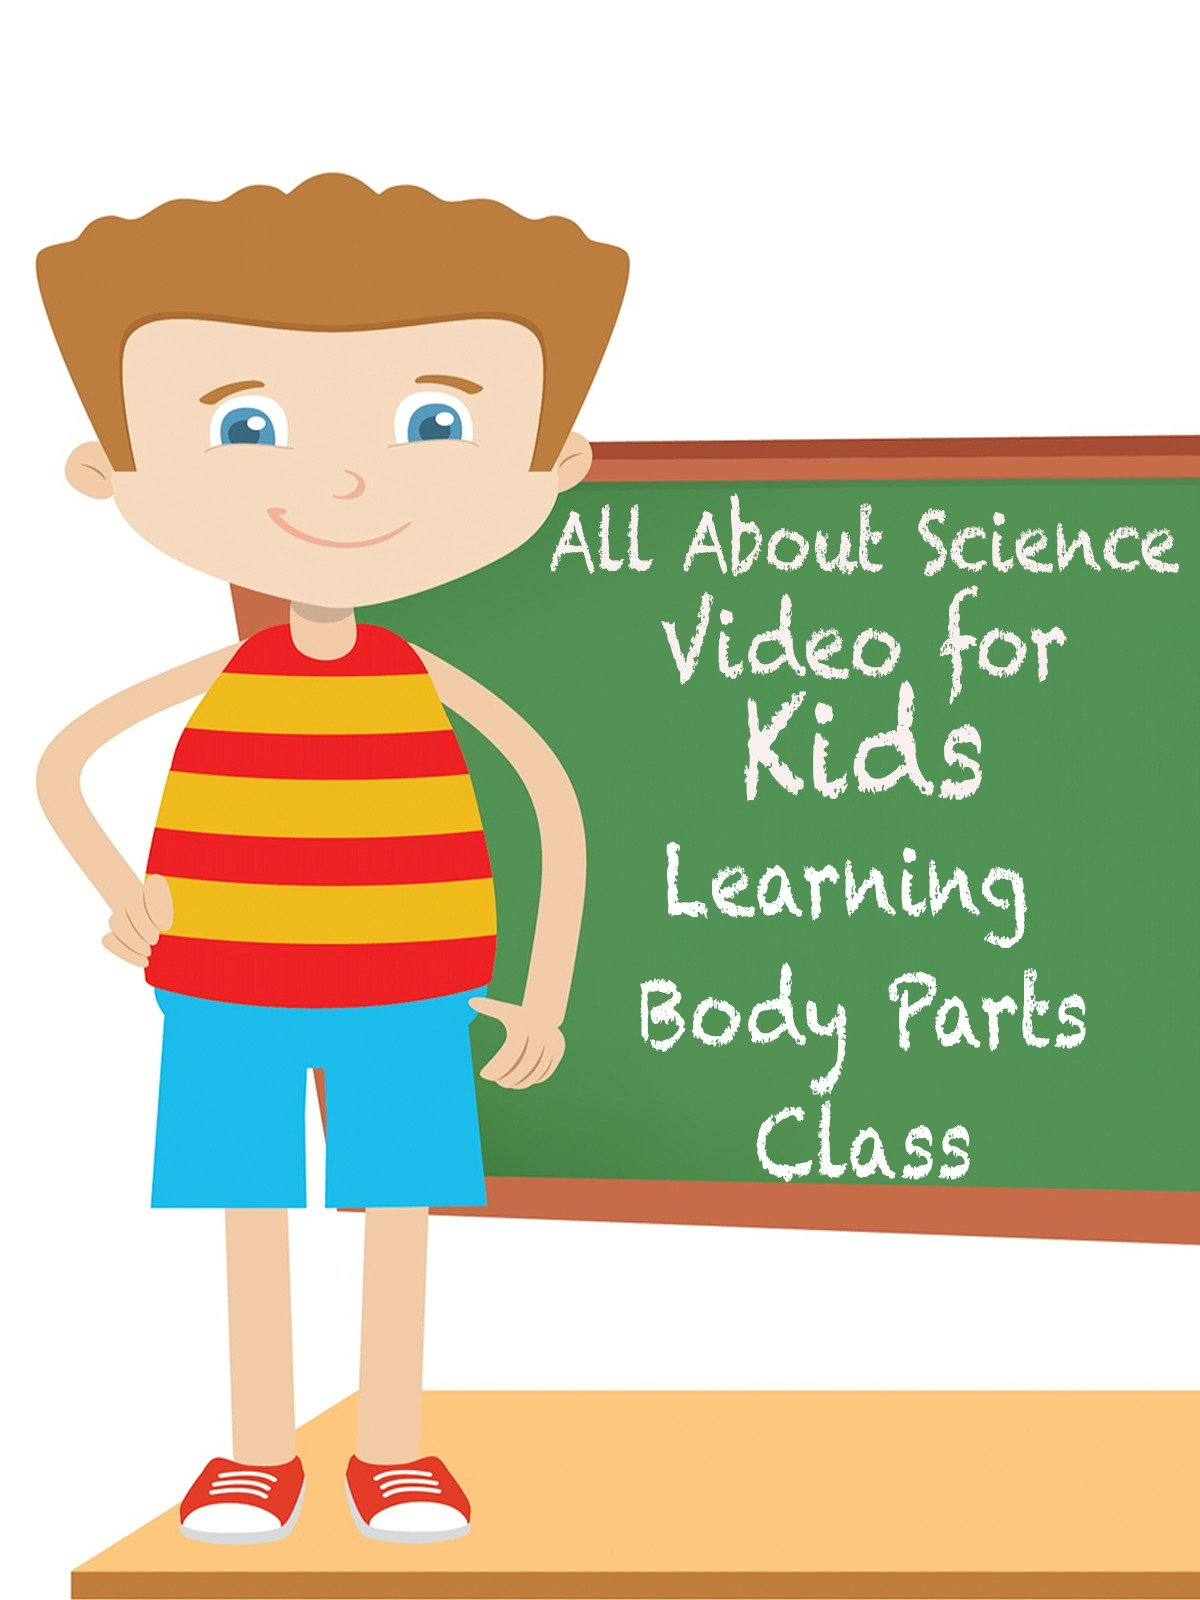 All About Science Video for Kids Learning Body Parts Class